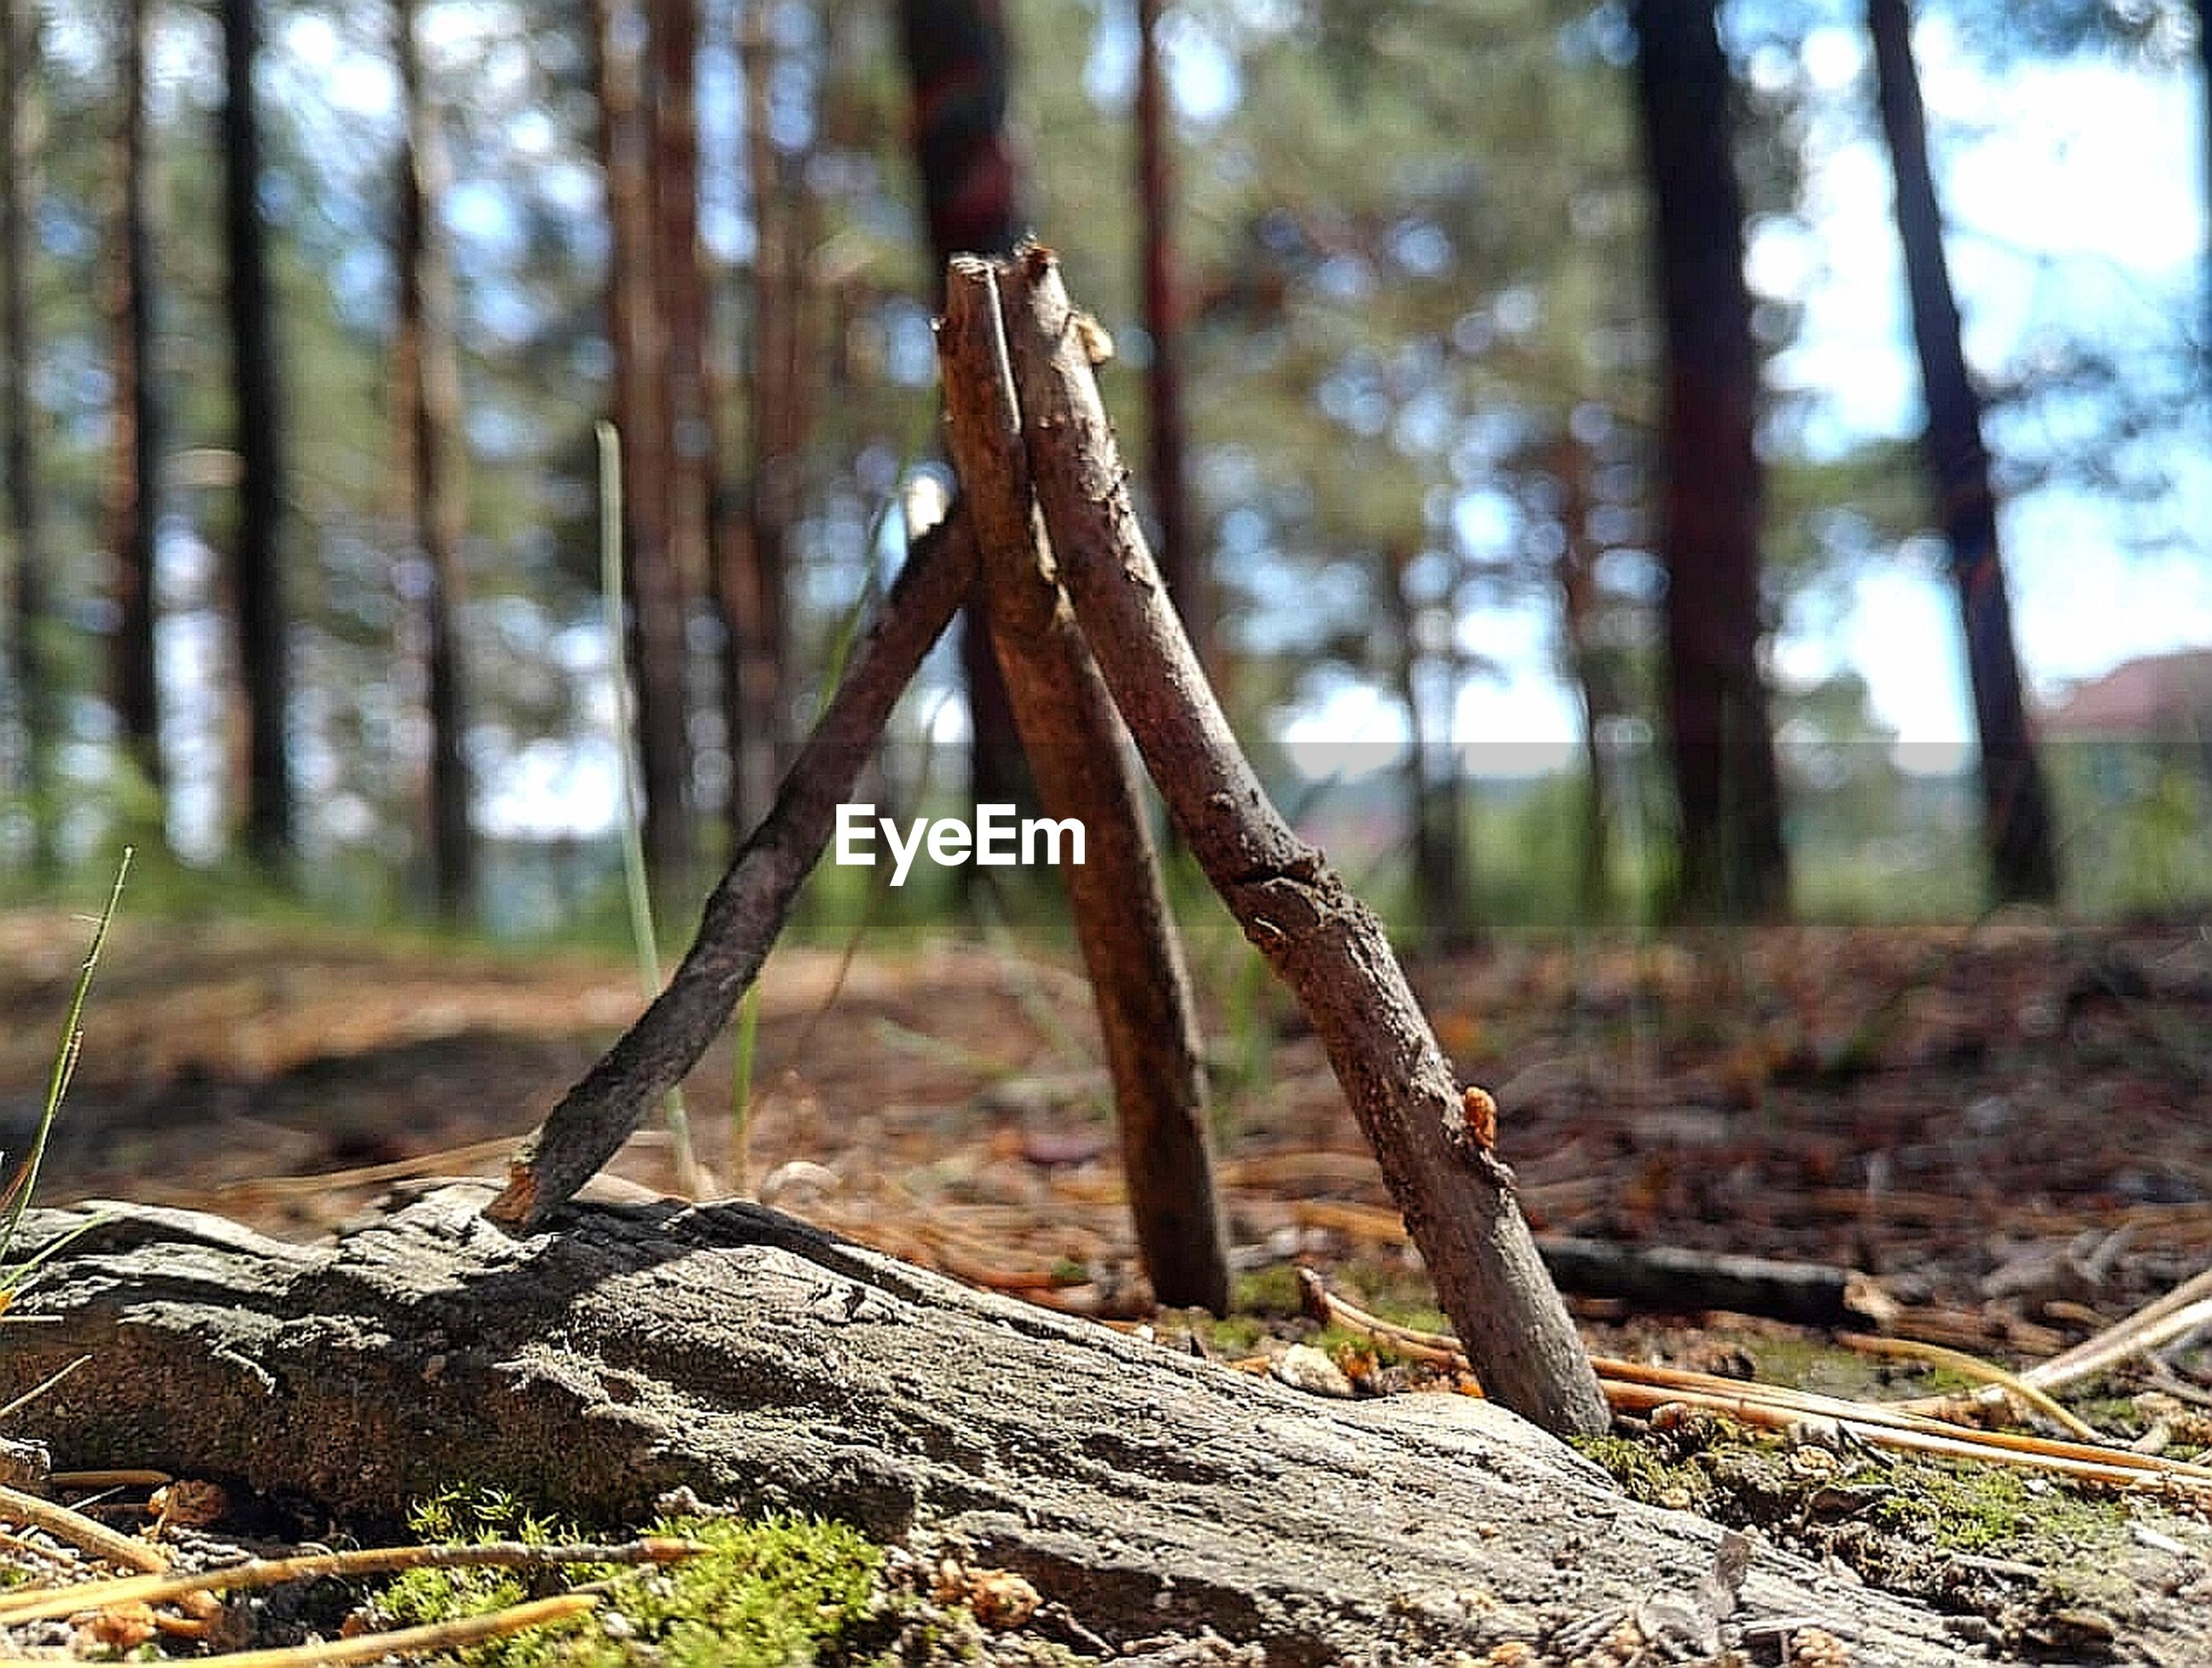 plant, land, tree, forest, focus on foreground, nature, growth, trunk, tree trunk, day, tranquility, no people, close-up, outdoors, beauty in nature, wood - material, woodland, sunlight, non-urban scene, field, dead plant